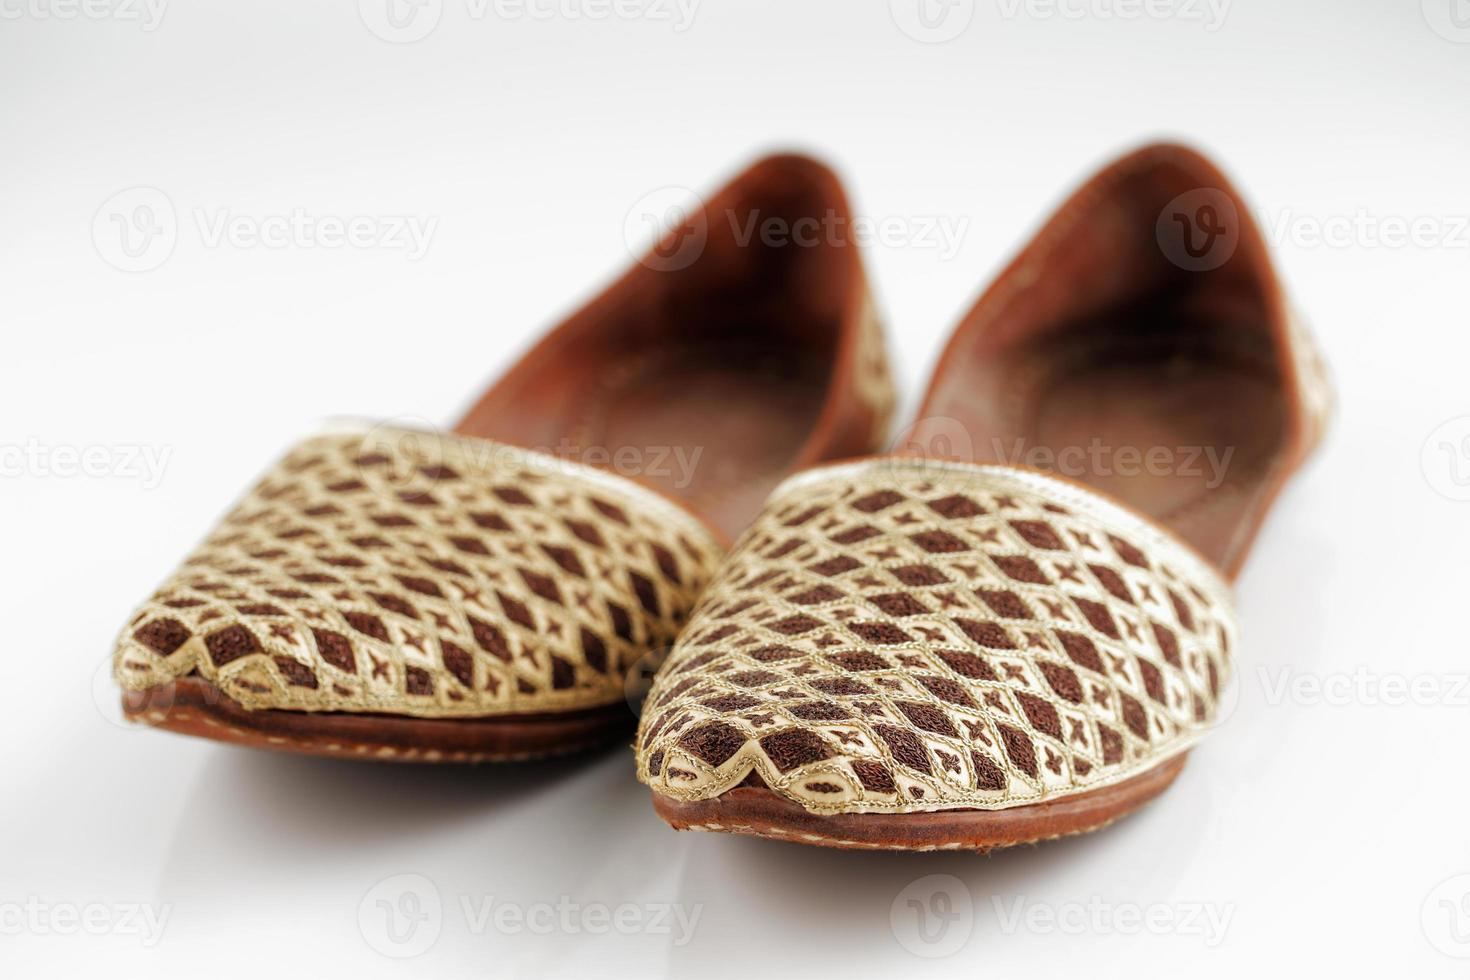 chaussons arabes traditionnels photo